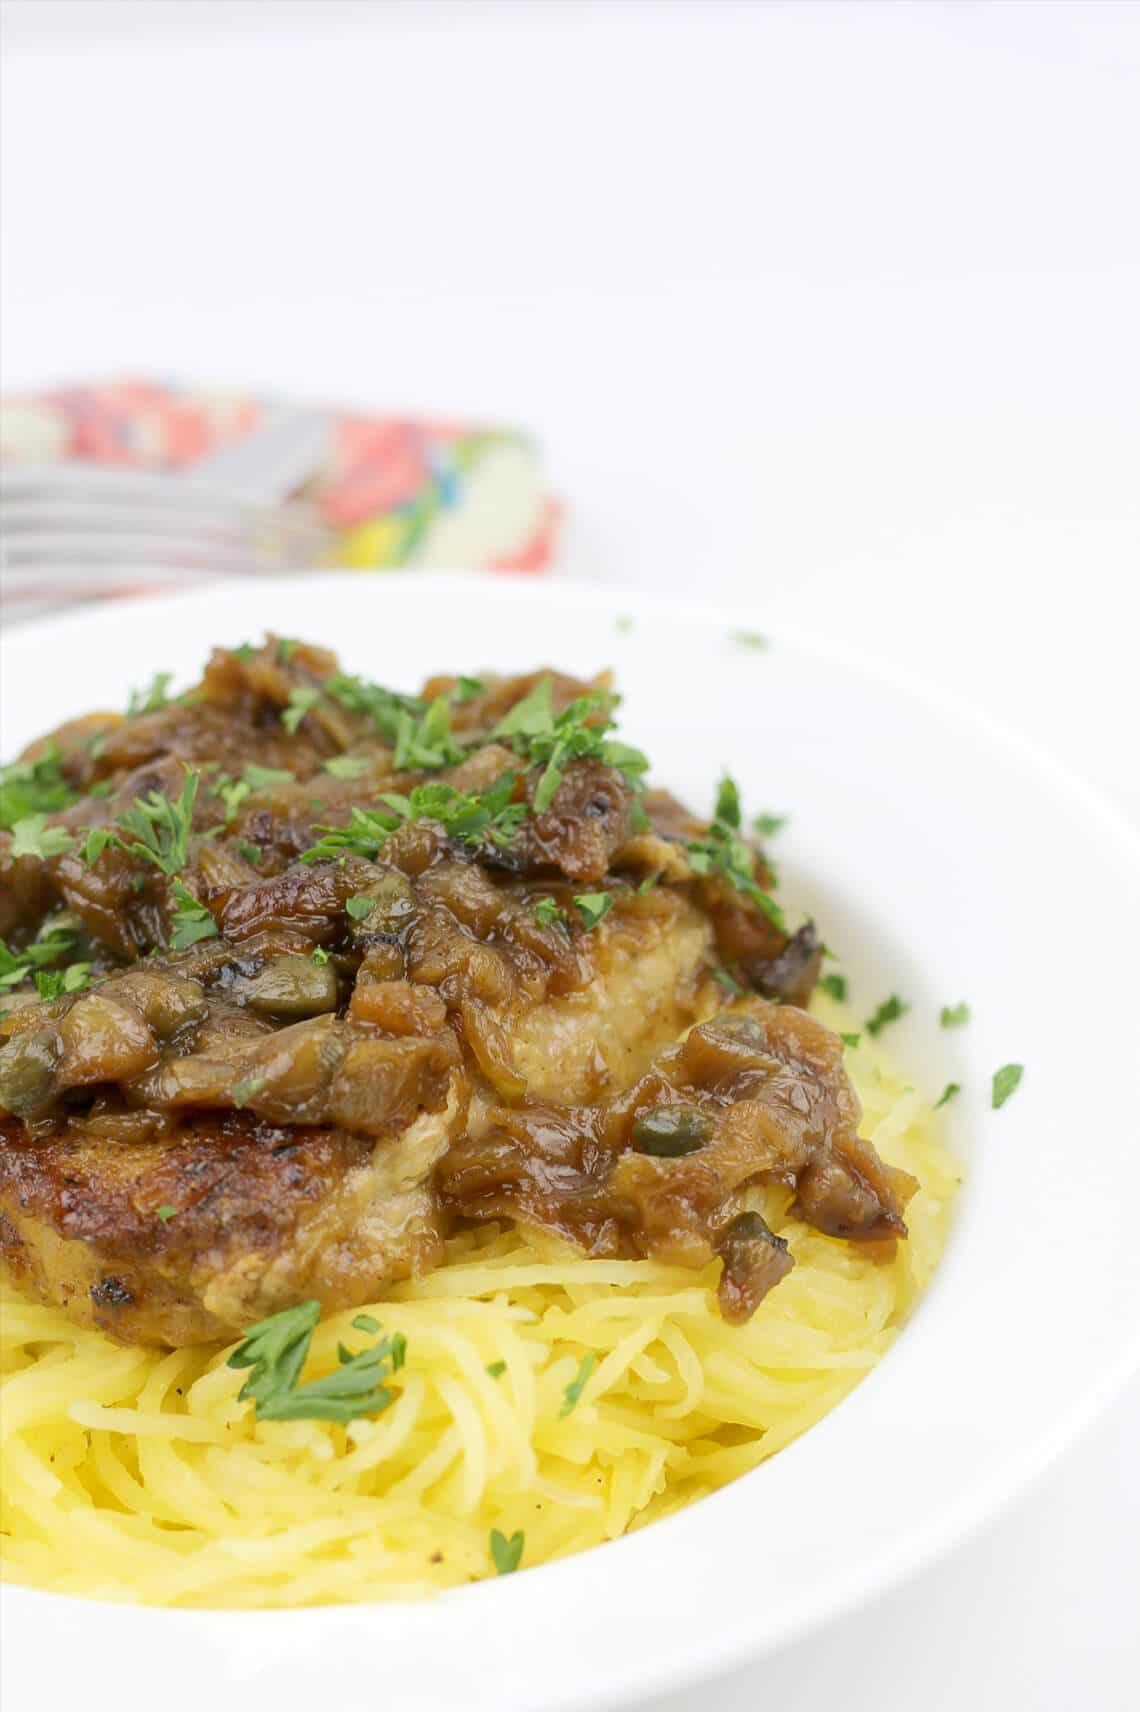 Pork chops with caramelized onions, capers, and white wine are delicious with noodles, mashed potatoes, cheese grits, or spaghetti squash.